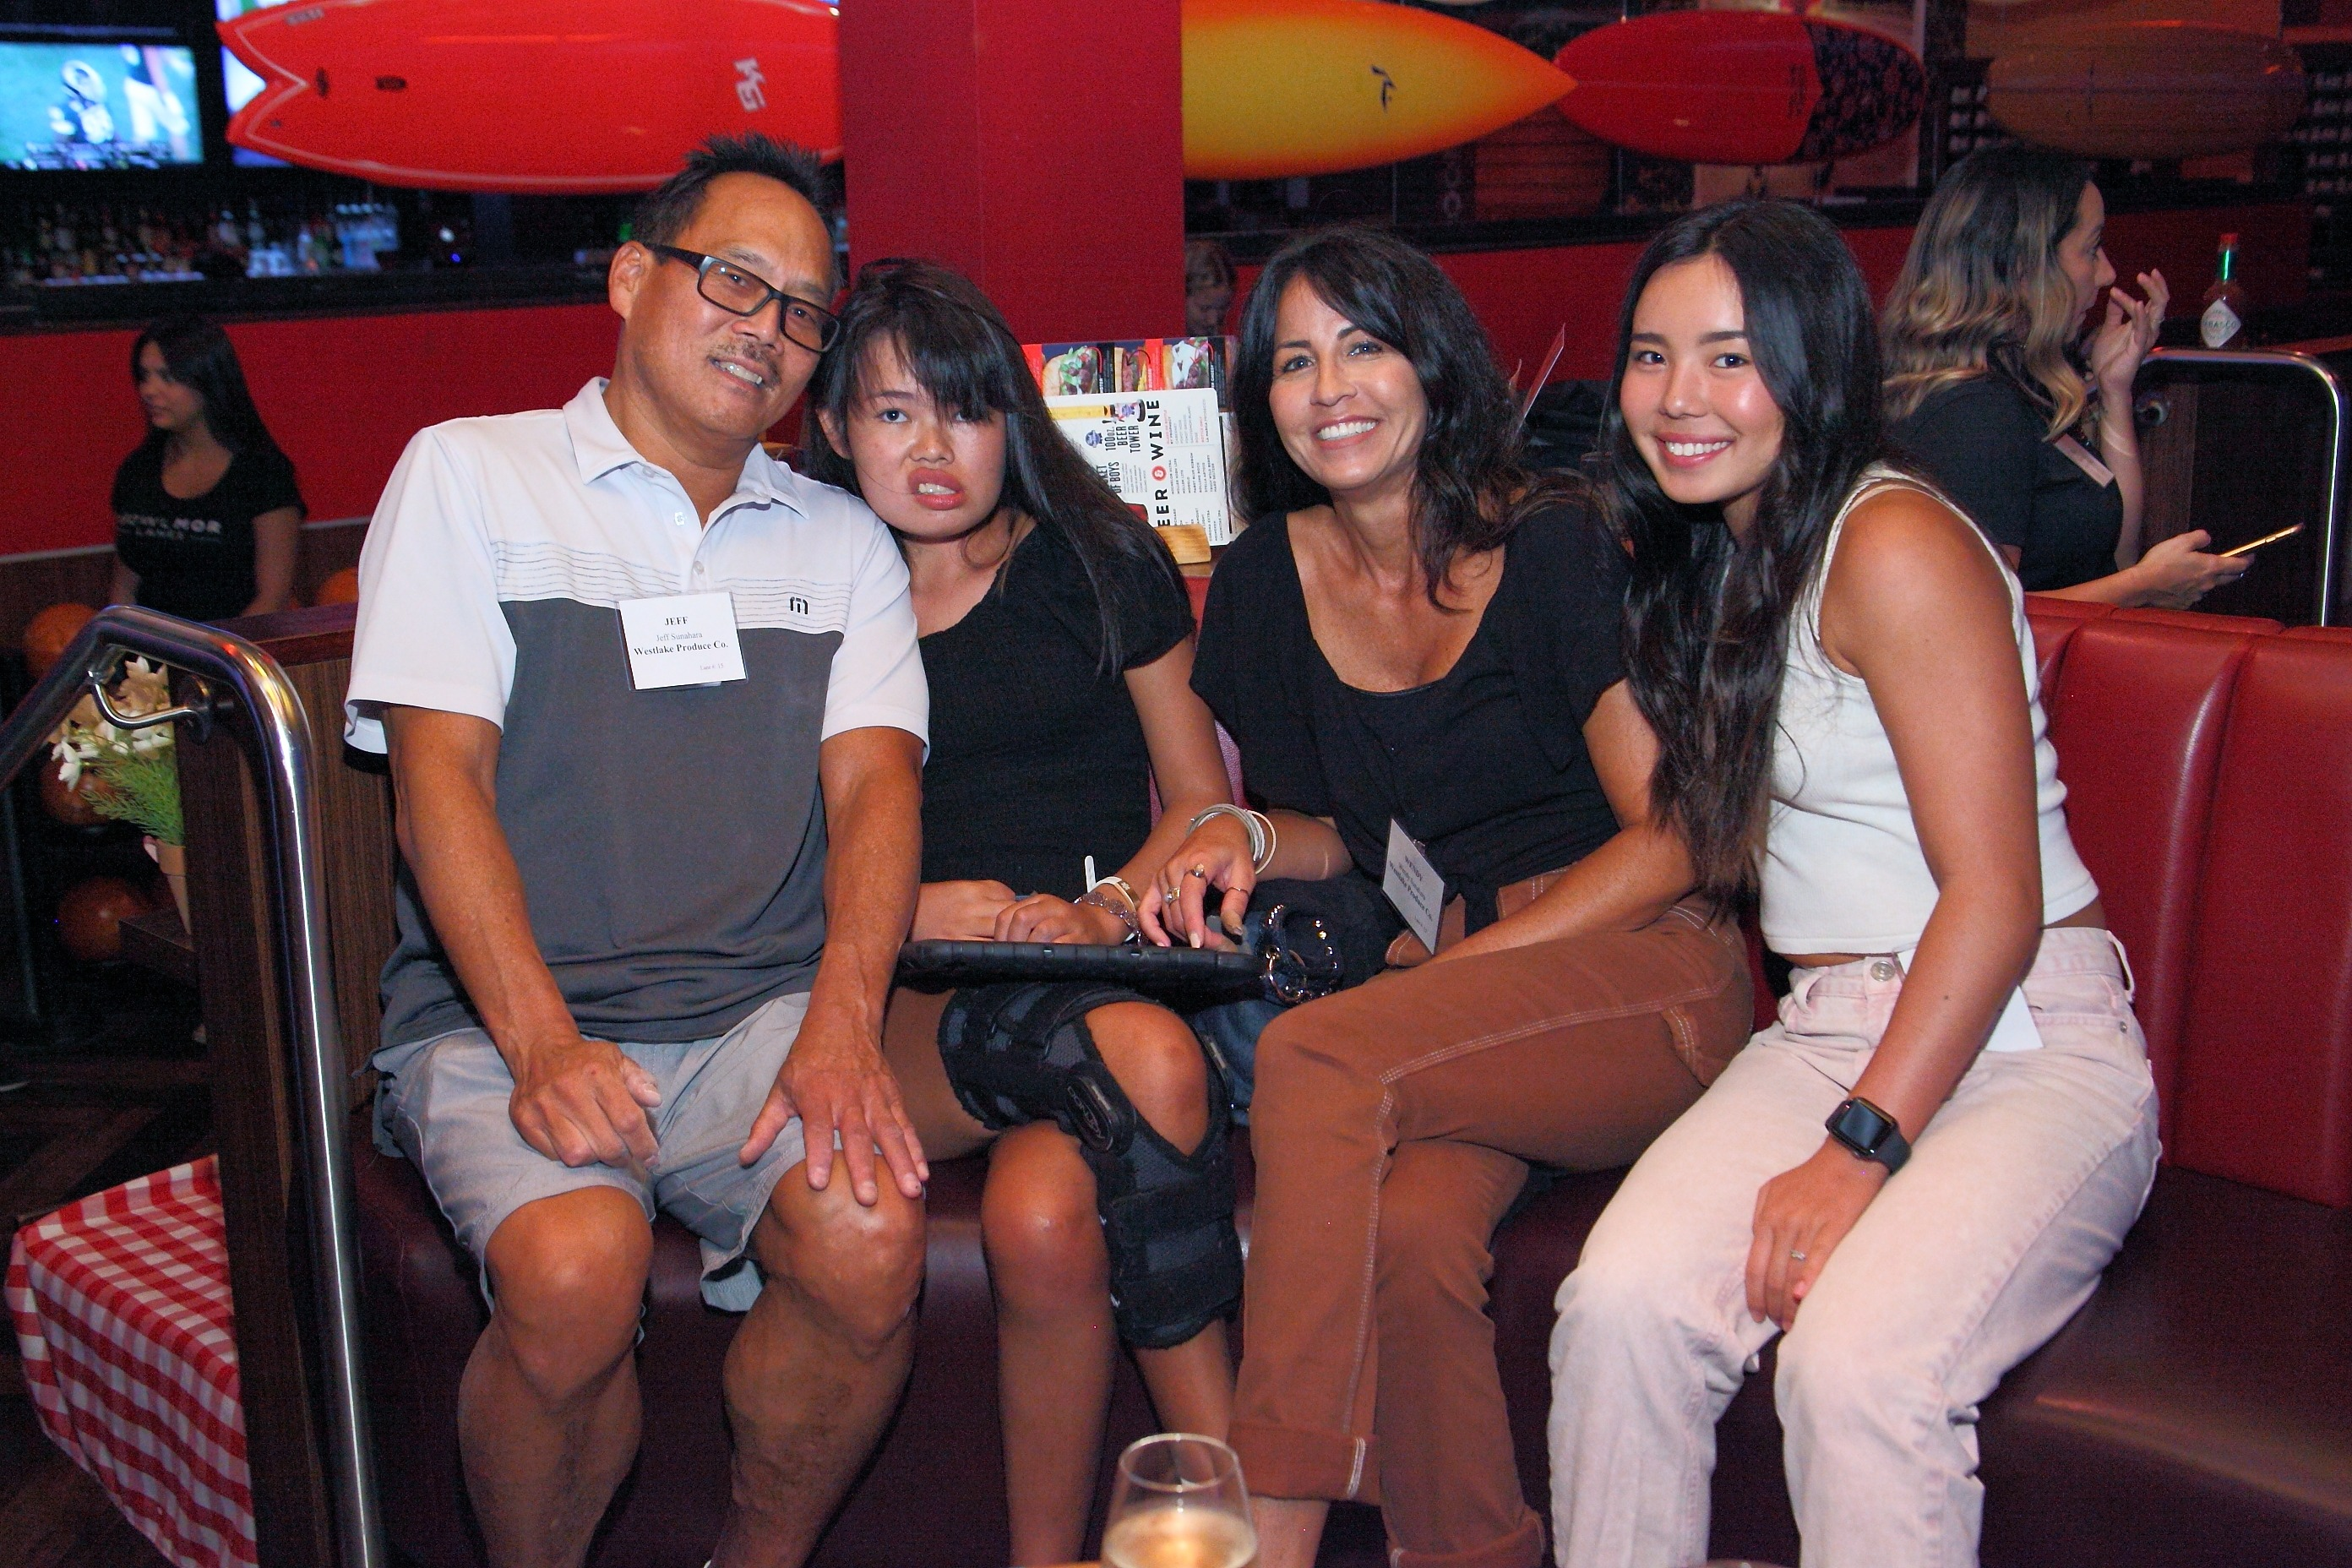 Jeff and Wendy Sunahara of Westlake Produce Company enjoying bowling with their two daughters.